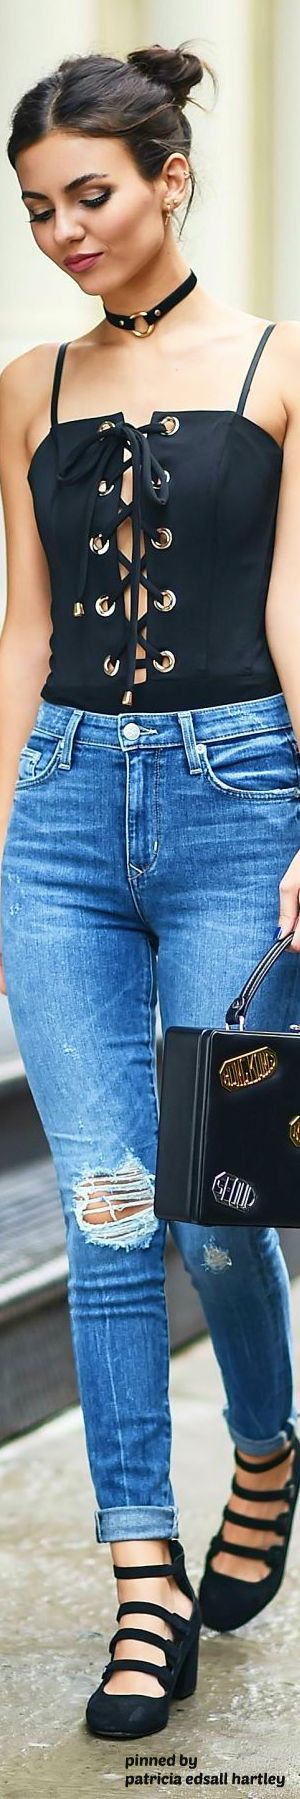 "( ☞ 2017 ★ HOT BEAUTIFUL CELEBRITY WOMAN ★ VICTORIA JUSTICE IN BLUE JEANS WITH HOLES "" Pop ♫ "" ) ★ ♪♫♪♪ Victoria Dawn Justice - Friday, February 19, 1993 - 5' 5½"" 117 lbs 34-23-32 - Hollywood, Florida, USA."